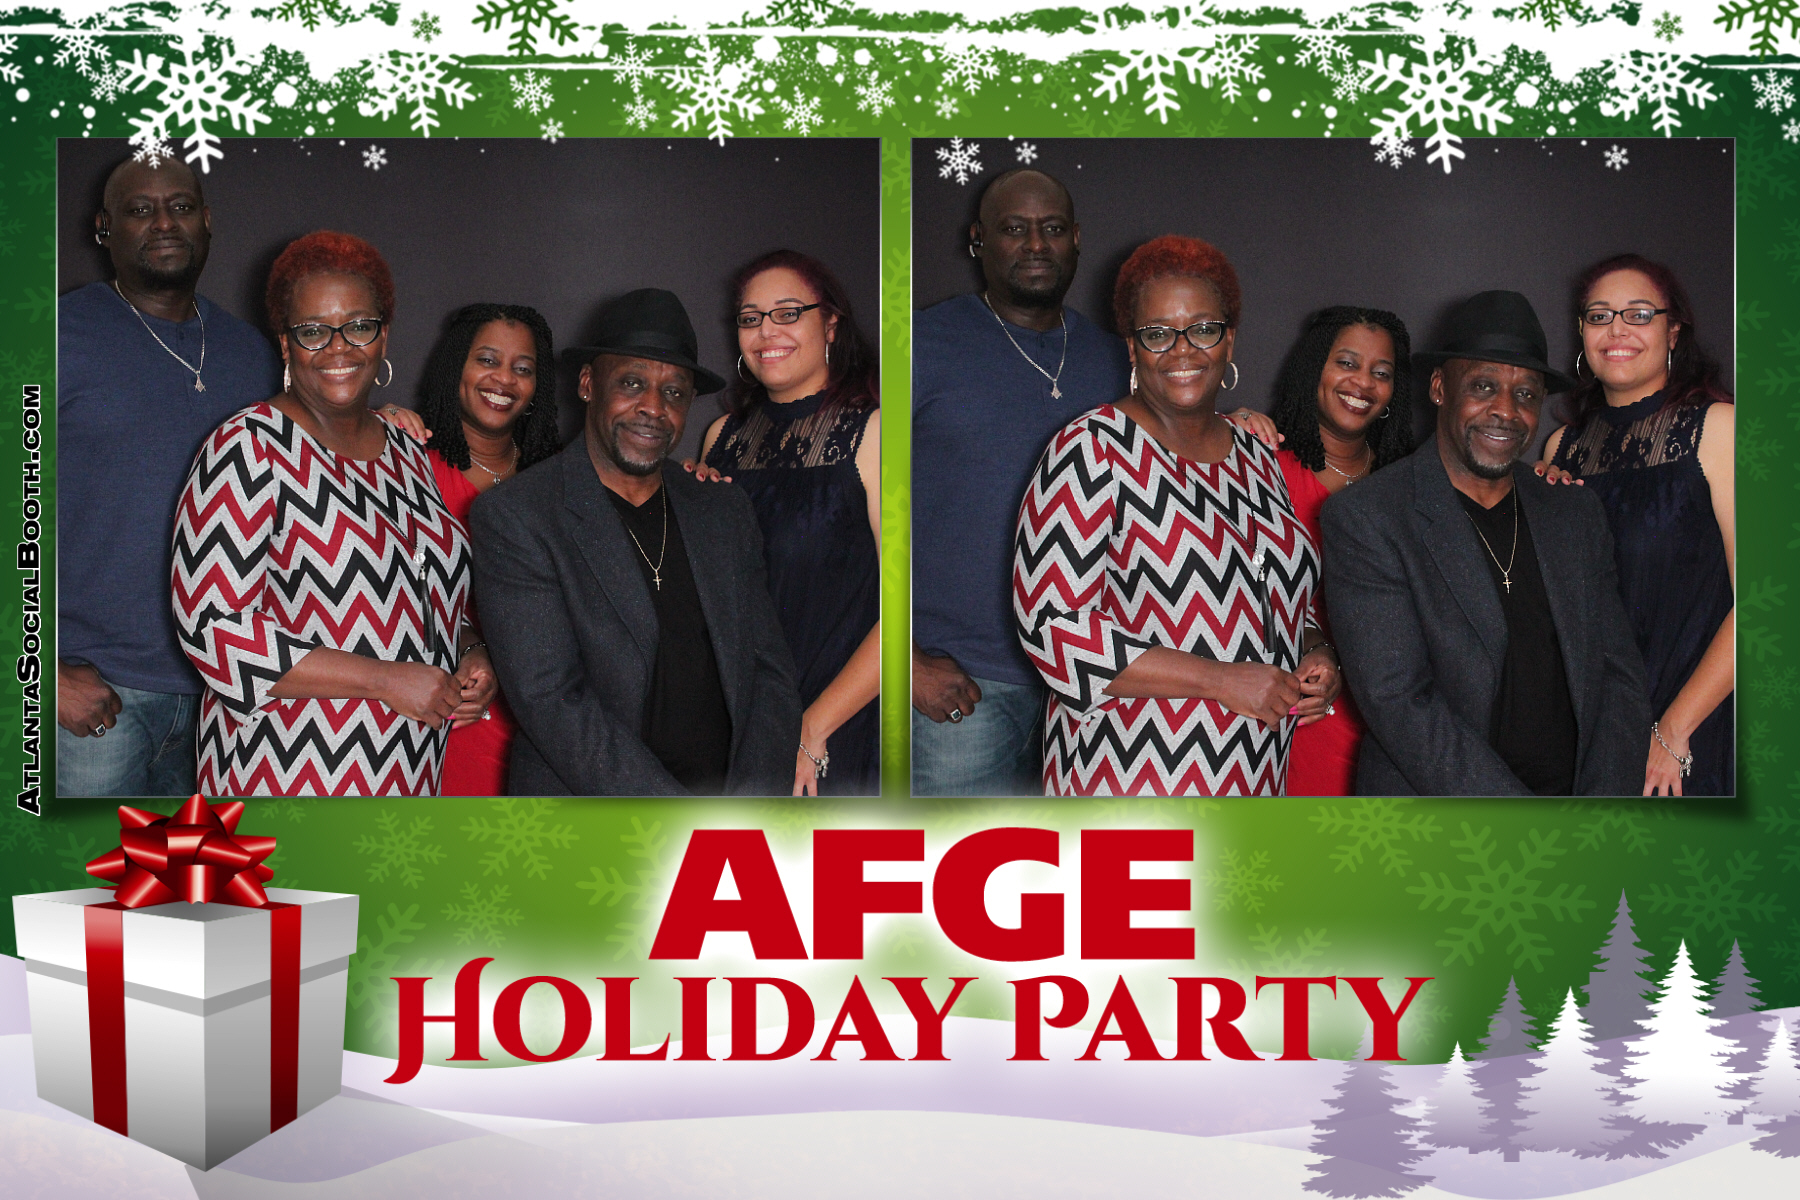 AFGE Holiday Party